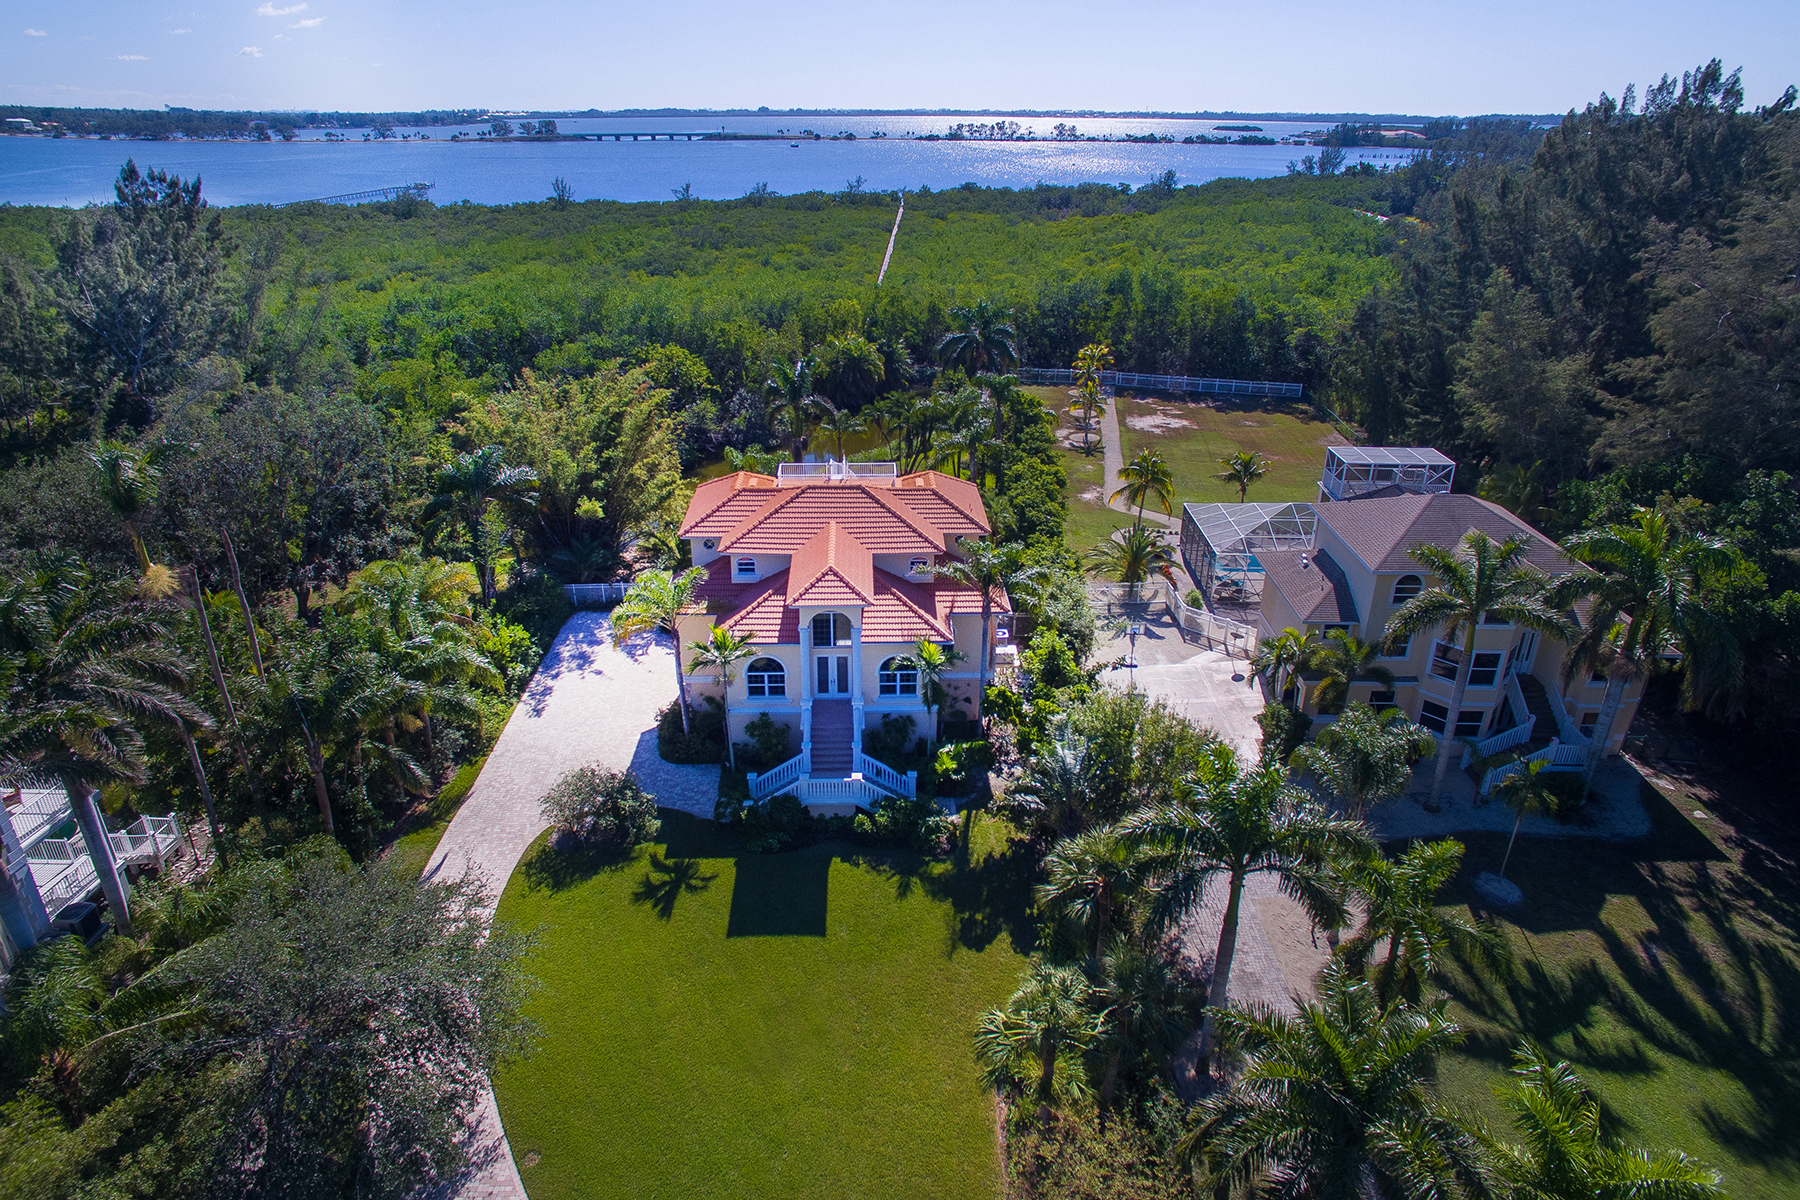 Single Family Home for Sale at PALMA SOLA BAY 9309 9th Ave NW, Bradenton, Florida, 34209 United States